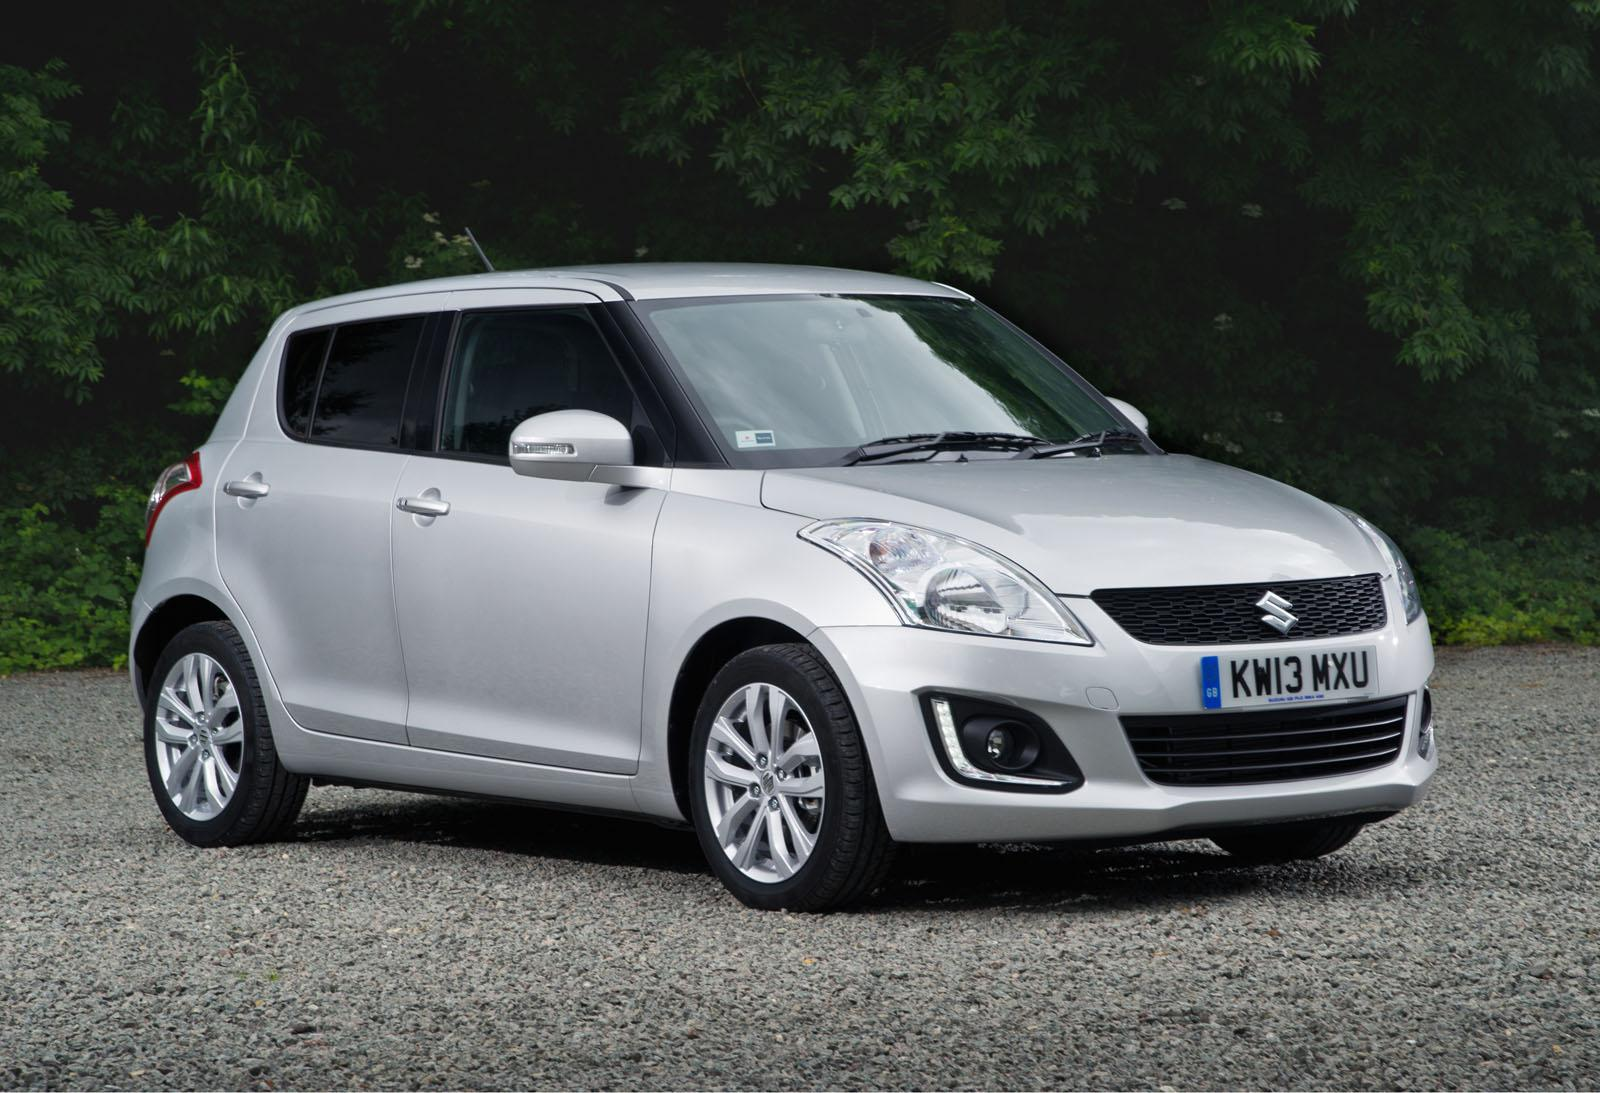 Suzuki SWIFT 2013 Price in Pakistan, Review, Full Specs & Images